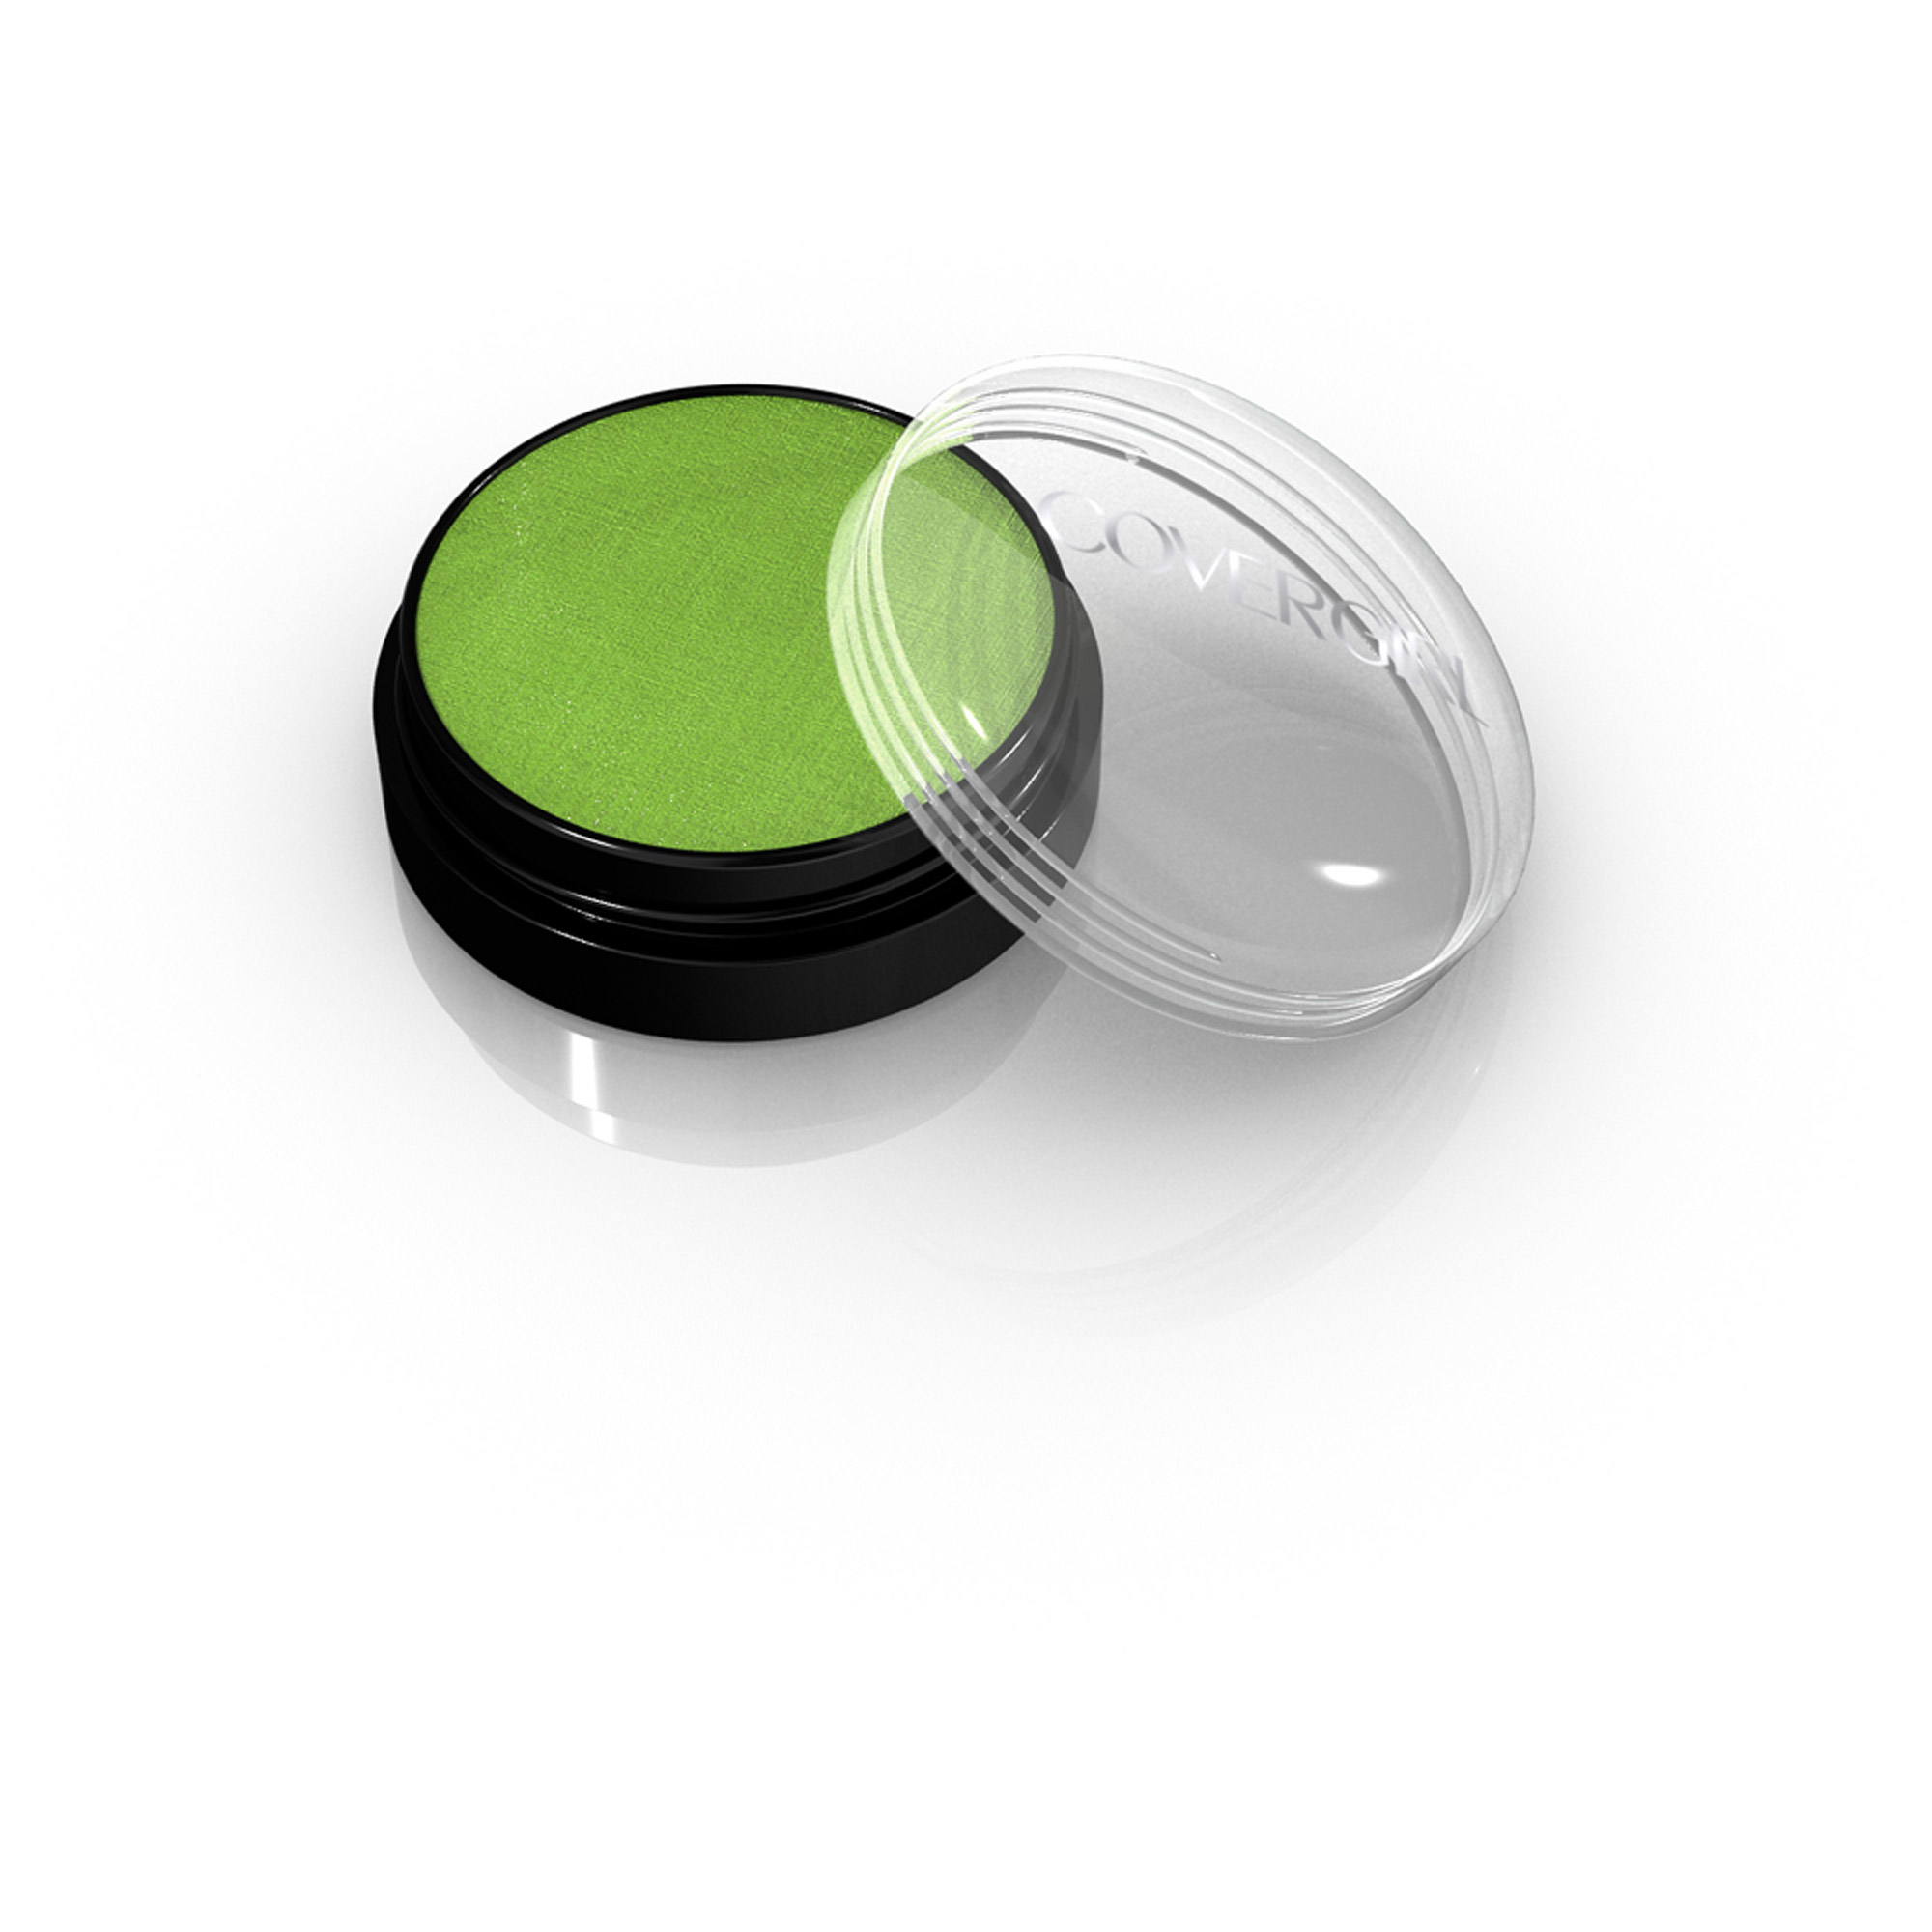 COVERGIRL Flamed Out Shadow Pot Lime Light 310, 0.07 oz